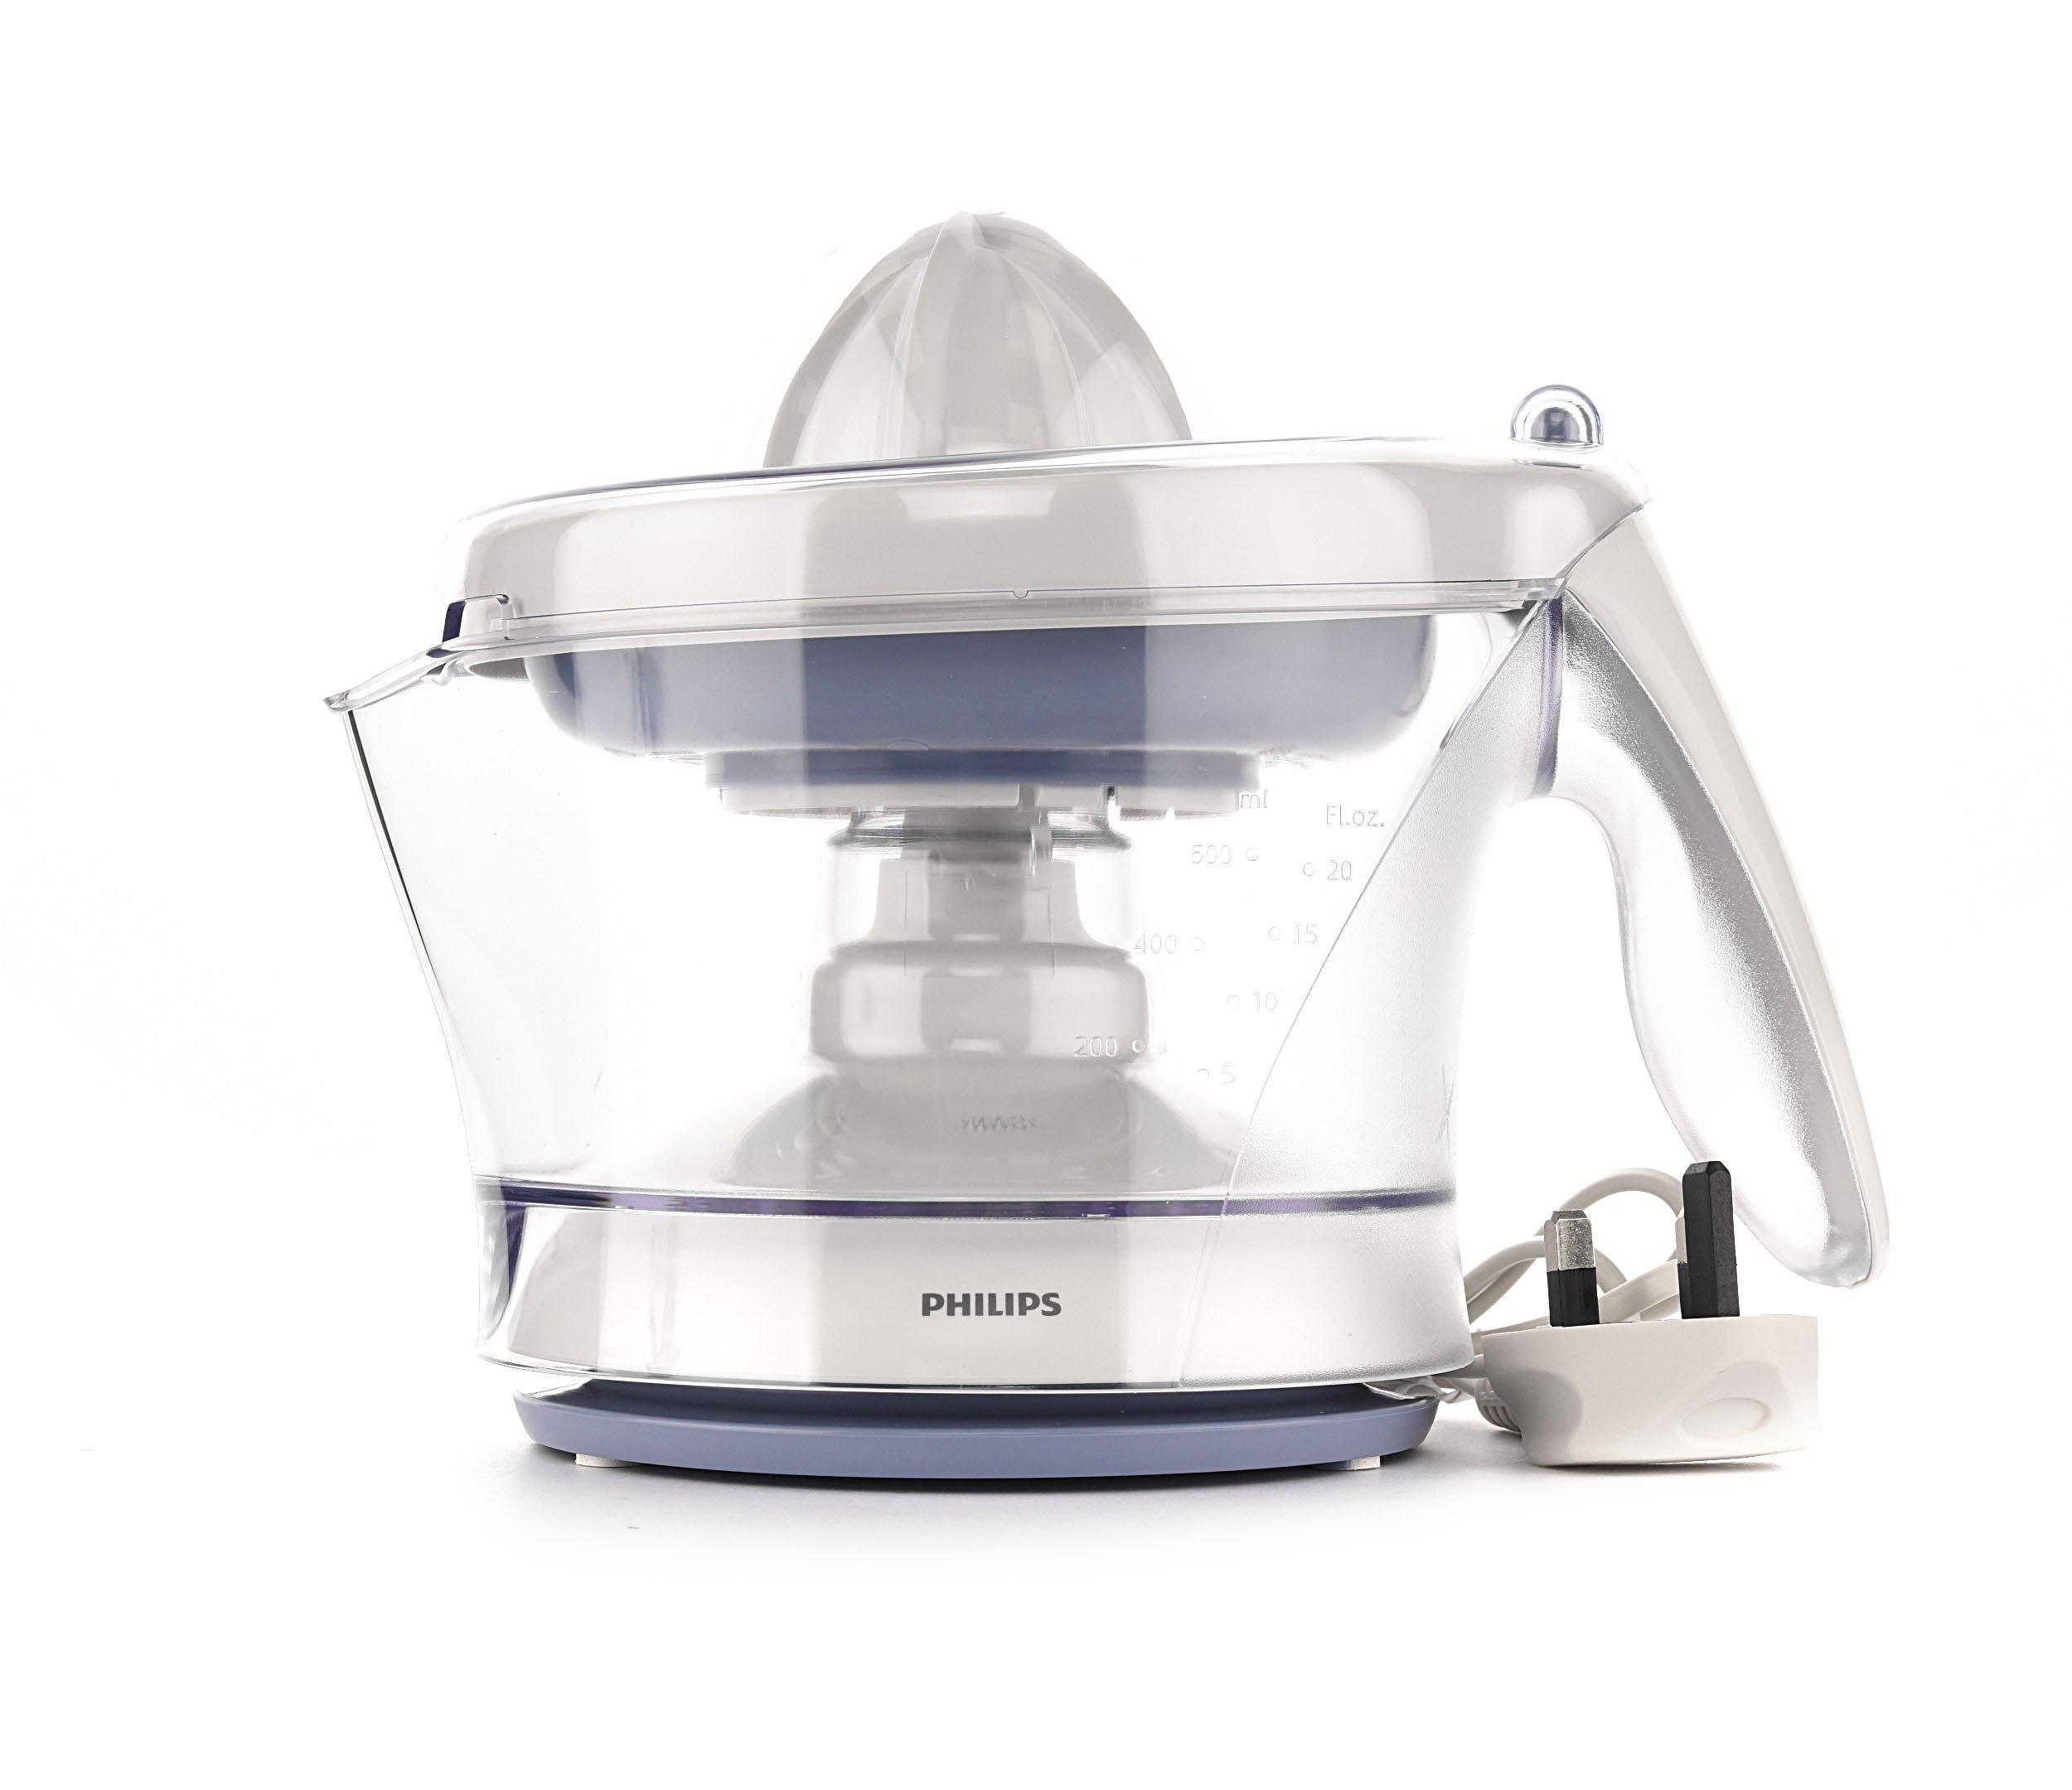 Philips, Juicer, 25 W, White